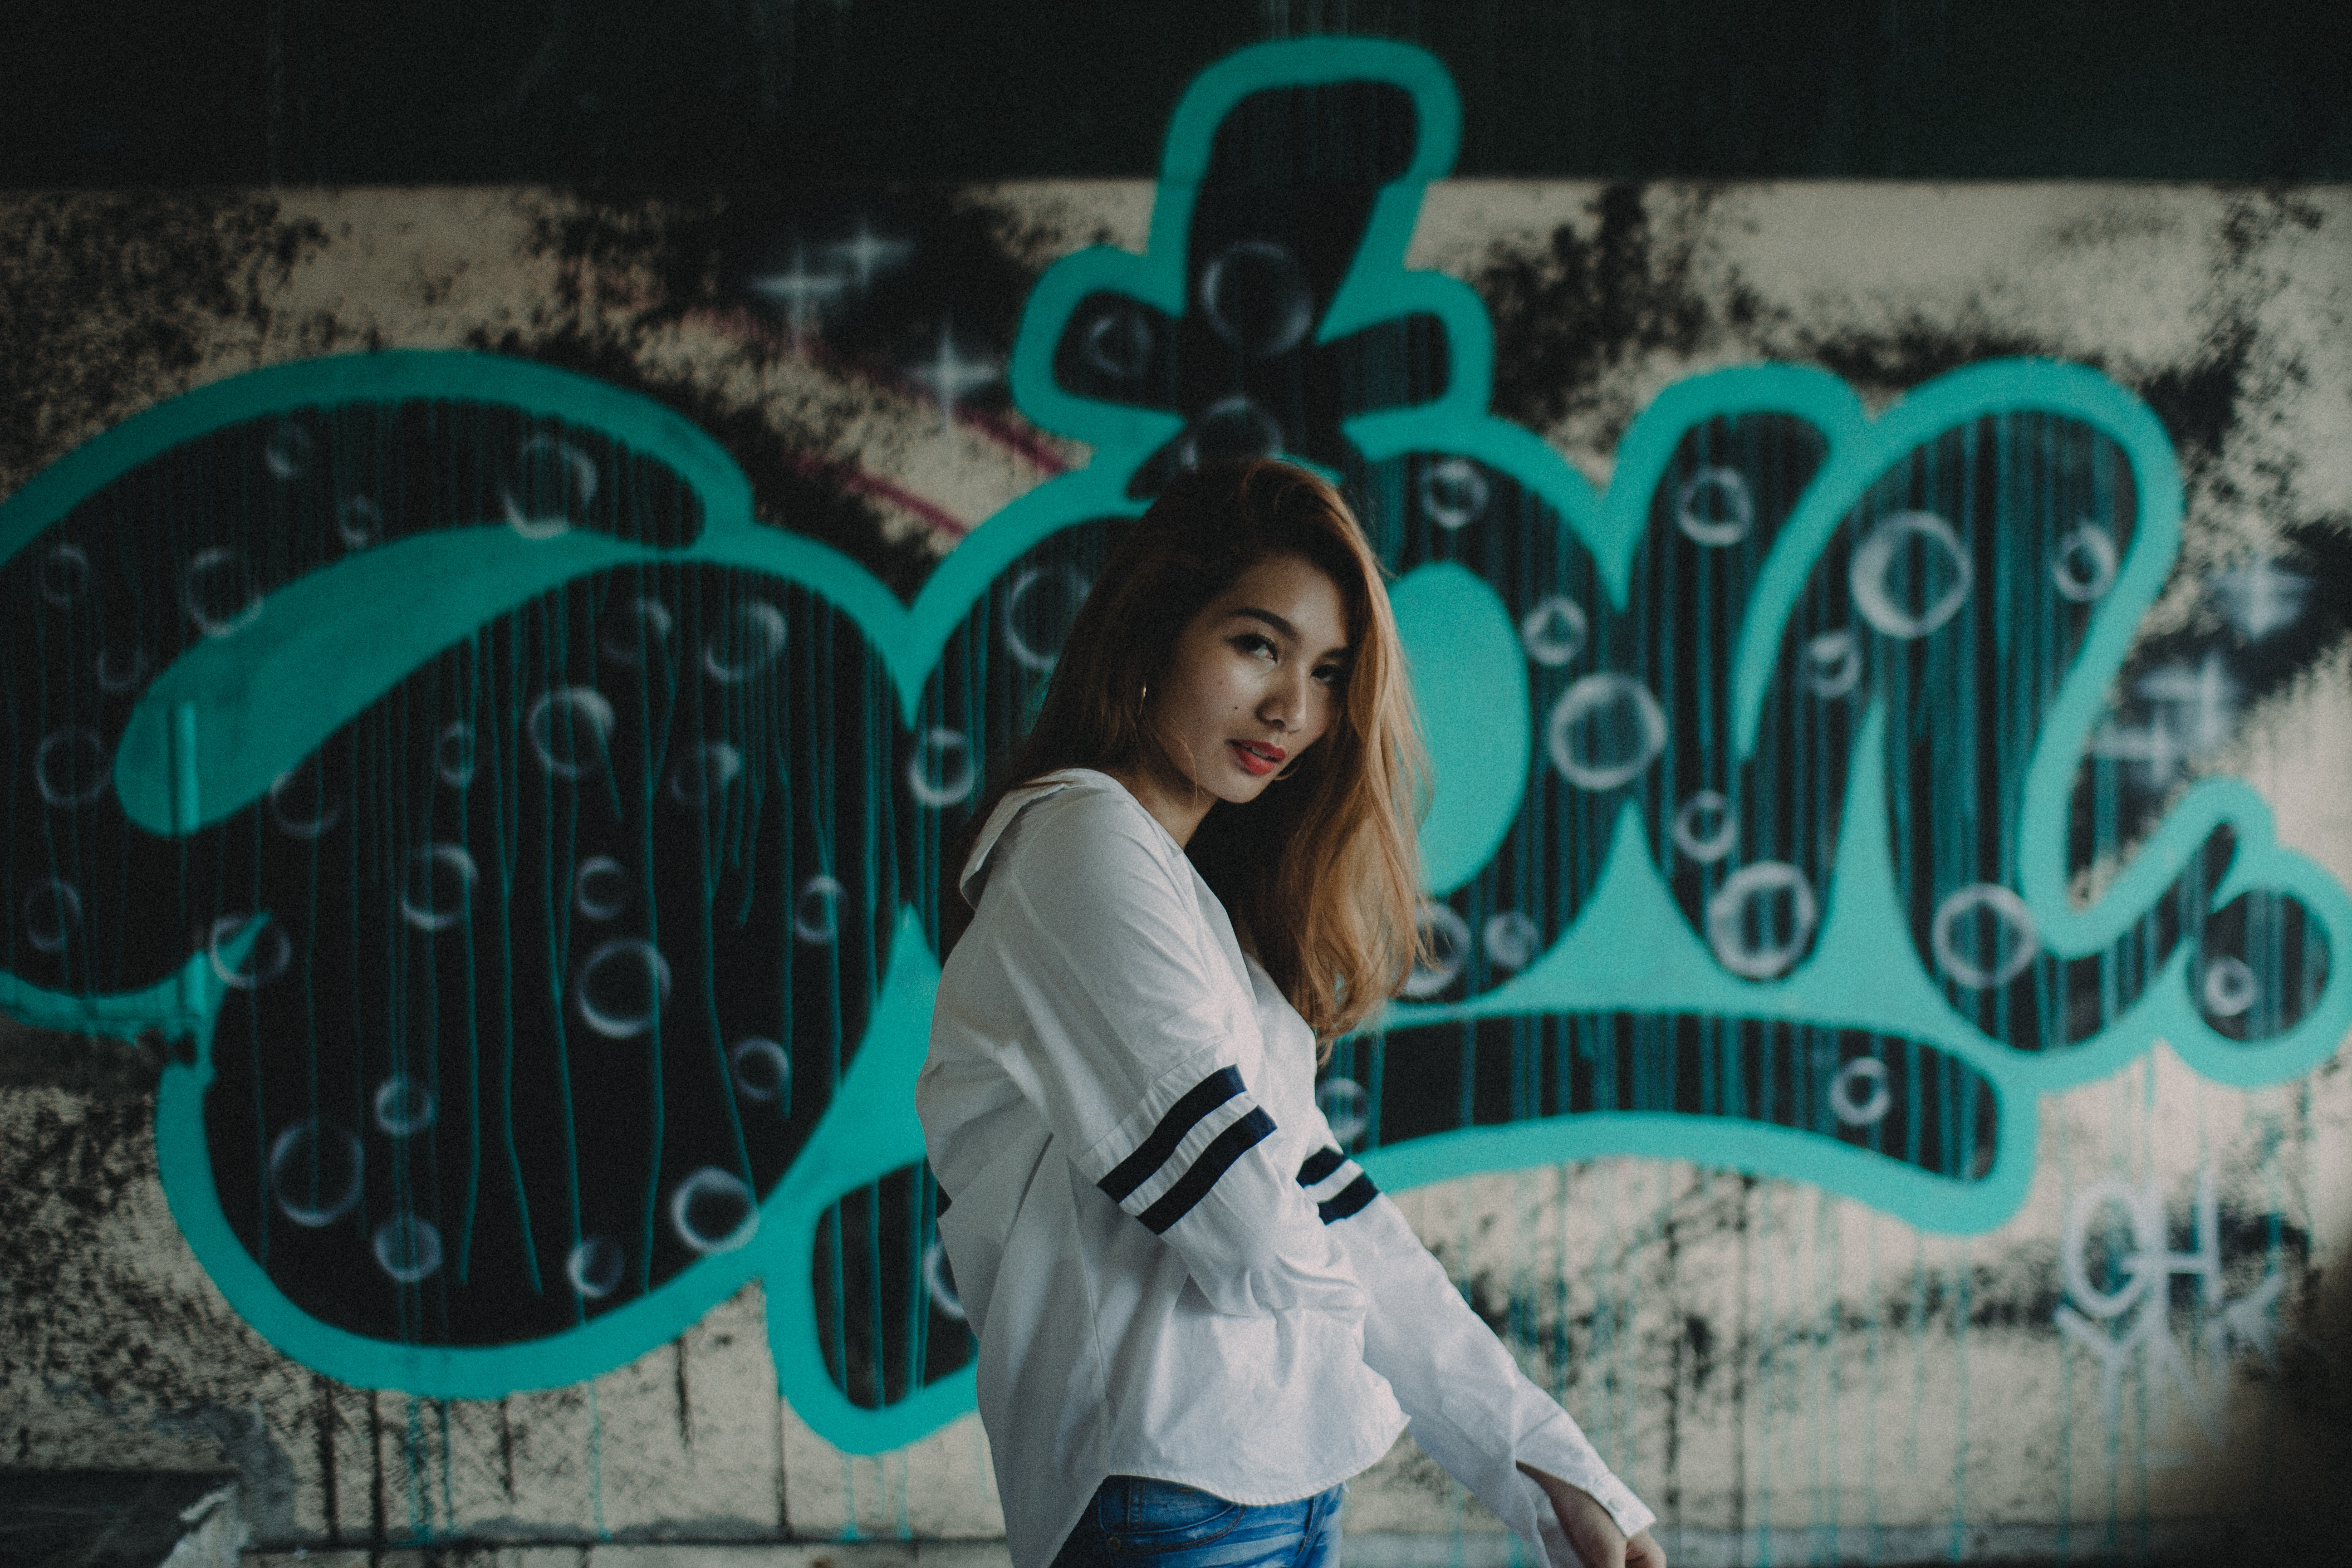 Woman in urban streetwear smiles subtly in front of a graffiti wall